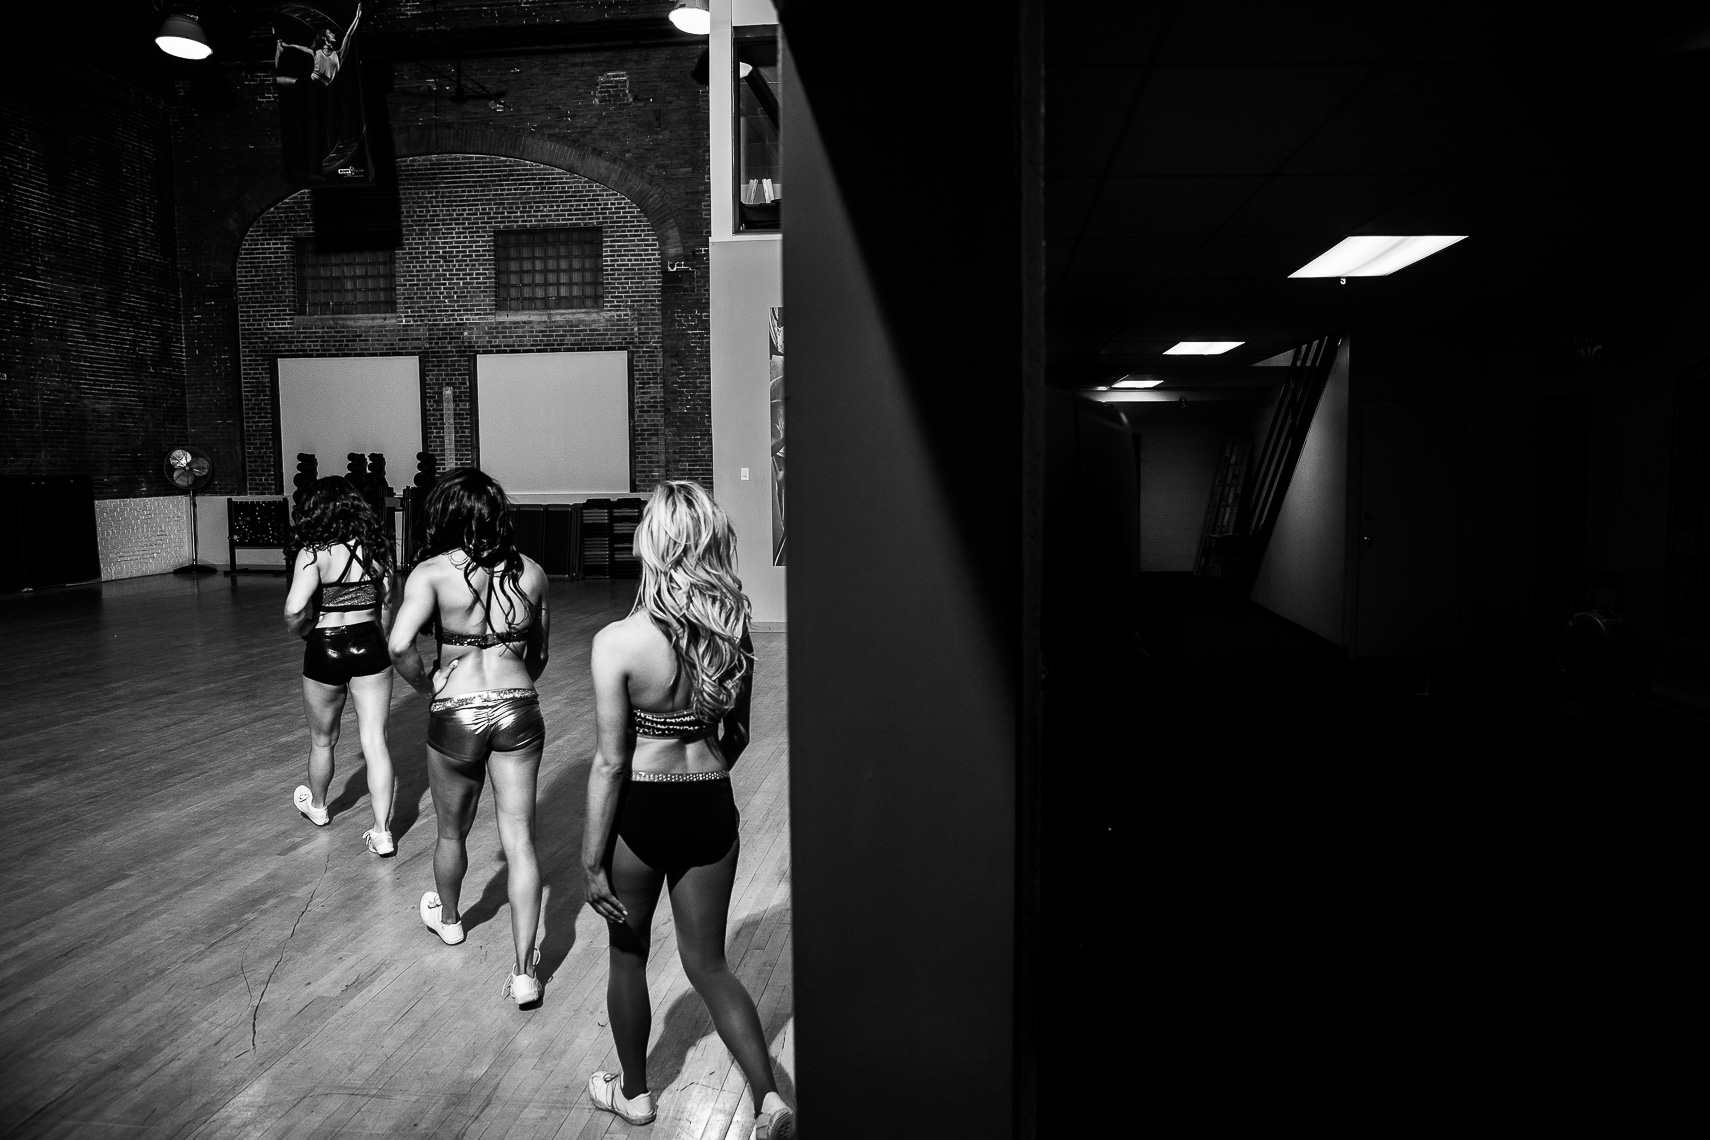 makingthecut12_ NFL cheerleaders cheerleading is a sport Baltimore Ravens cheerleading tryouts documentary photographer in Baltimore sports photojournalism documentary photos professional cheerleaders athletes cheerleading photos